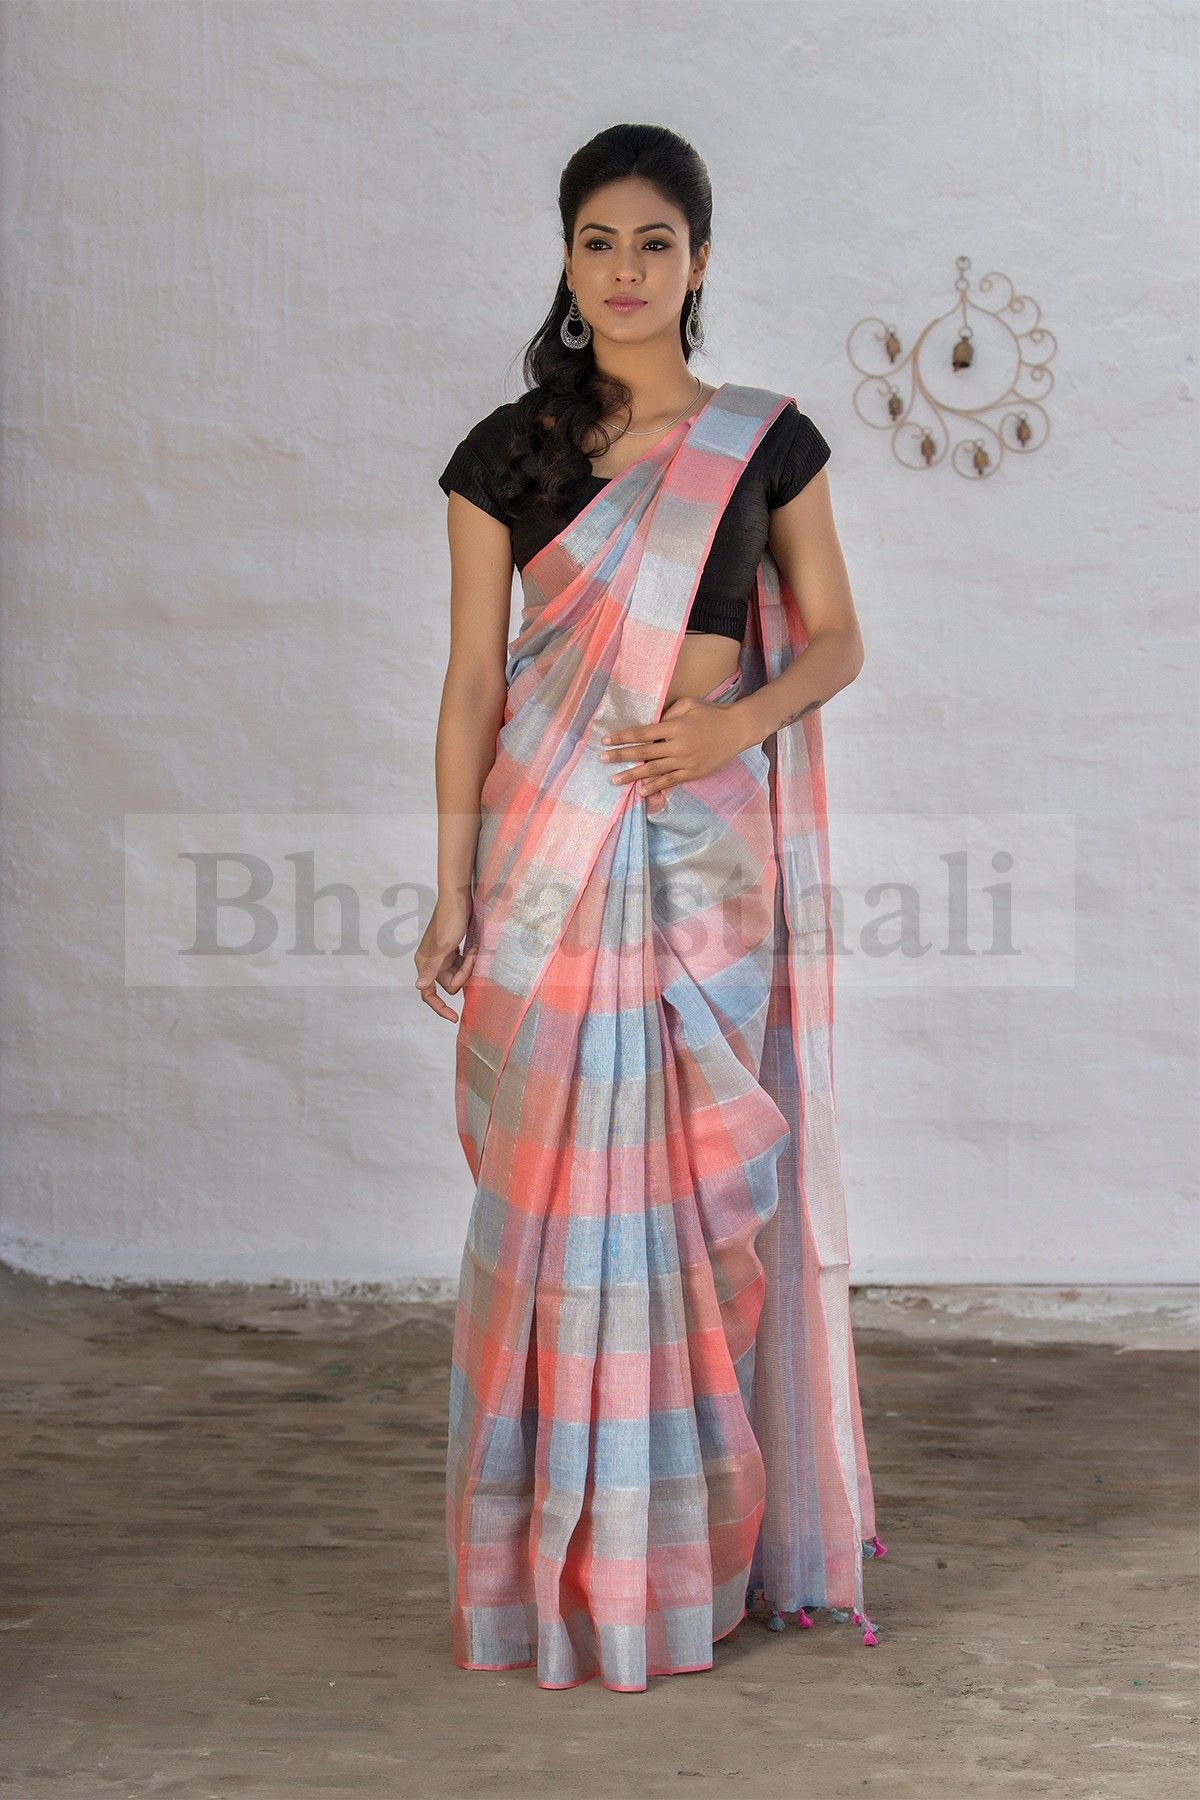 793db4255c Super Soft Linen Sarees That You Can Wear Everyday in Summer • Keep Me  Stylish